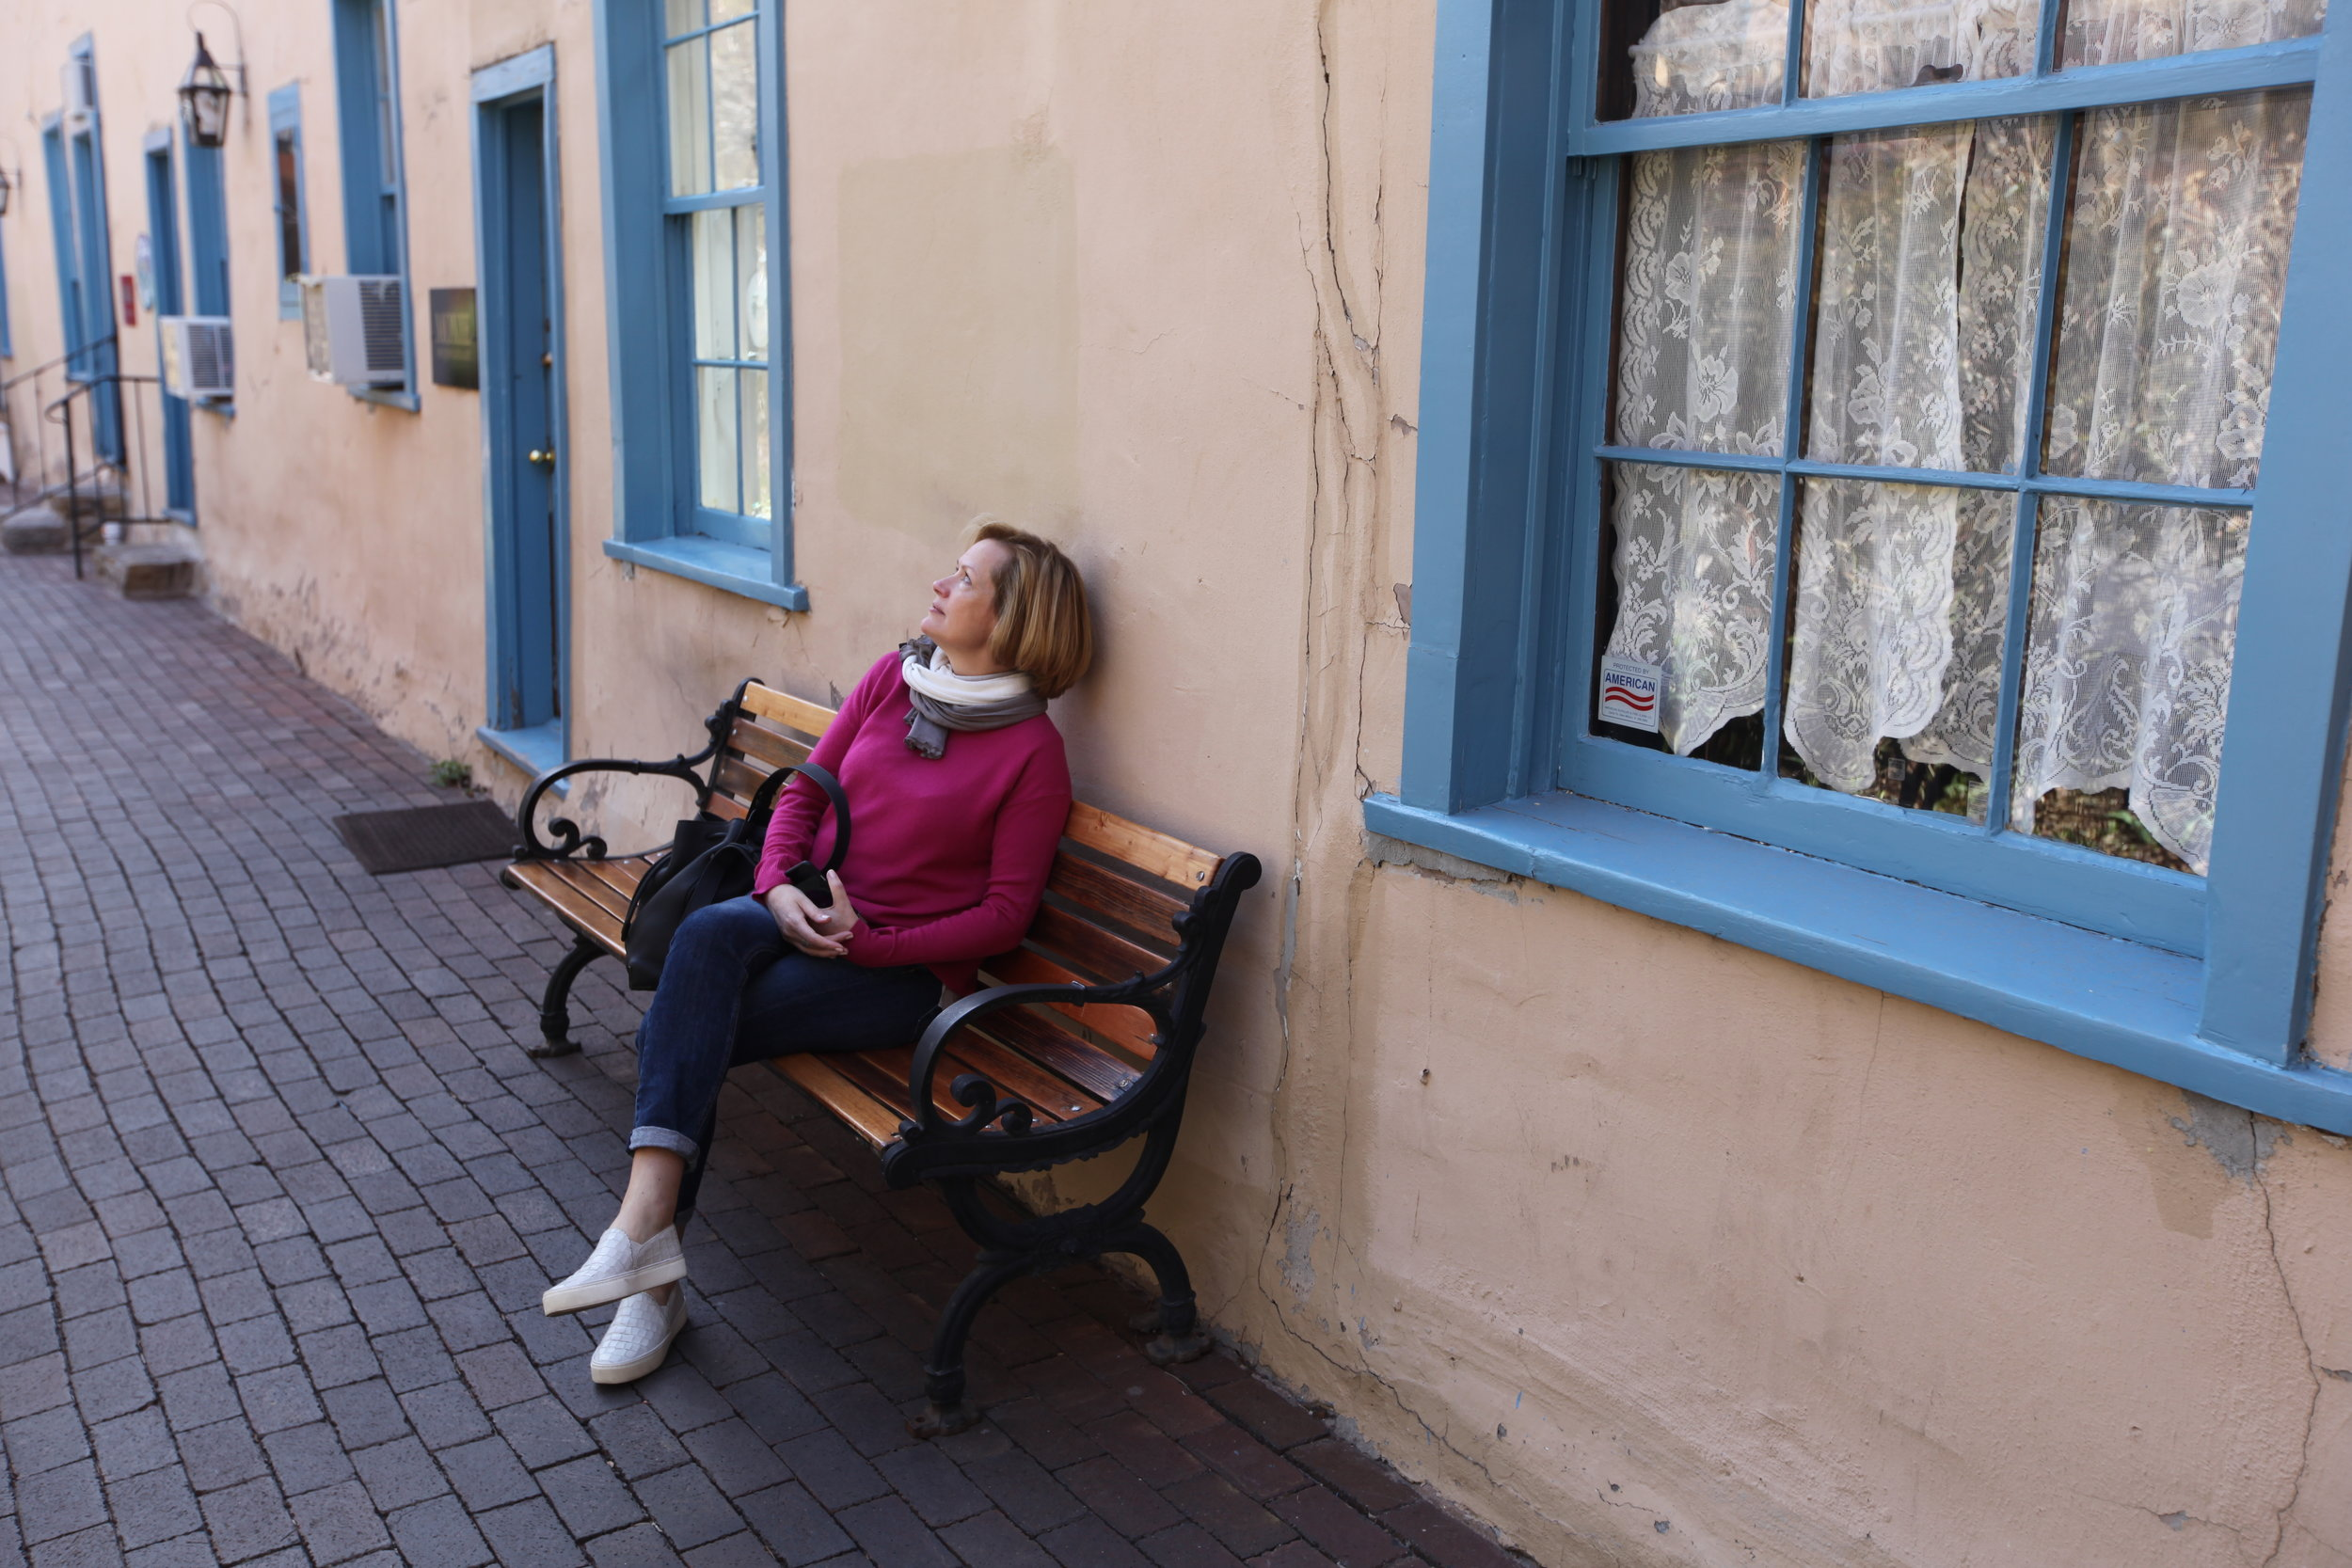 Louise on our 'bookpacking' adventure in Santa Fe.